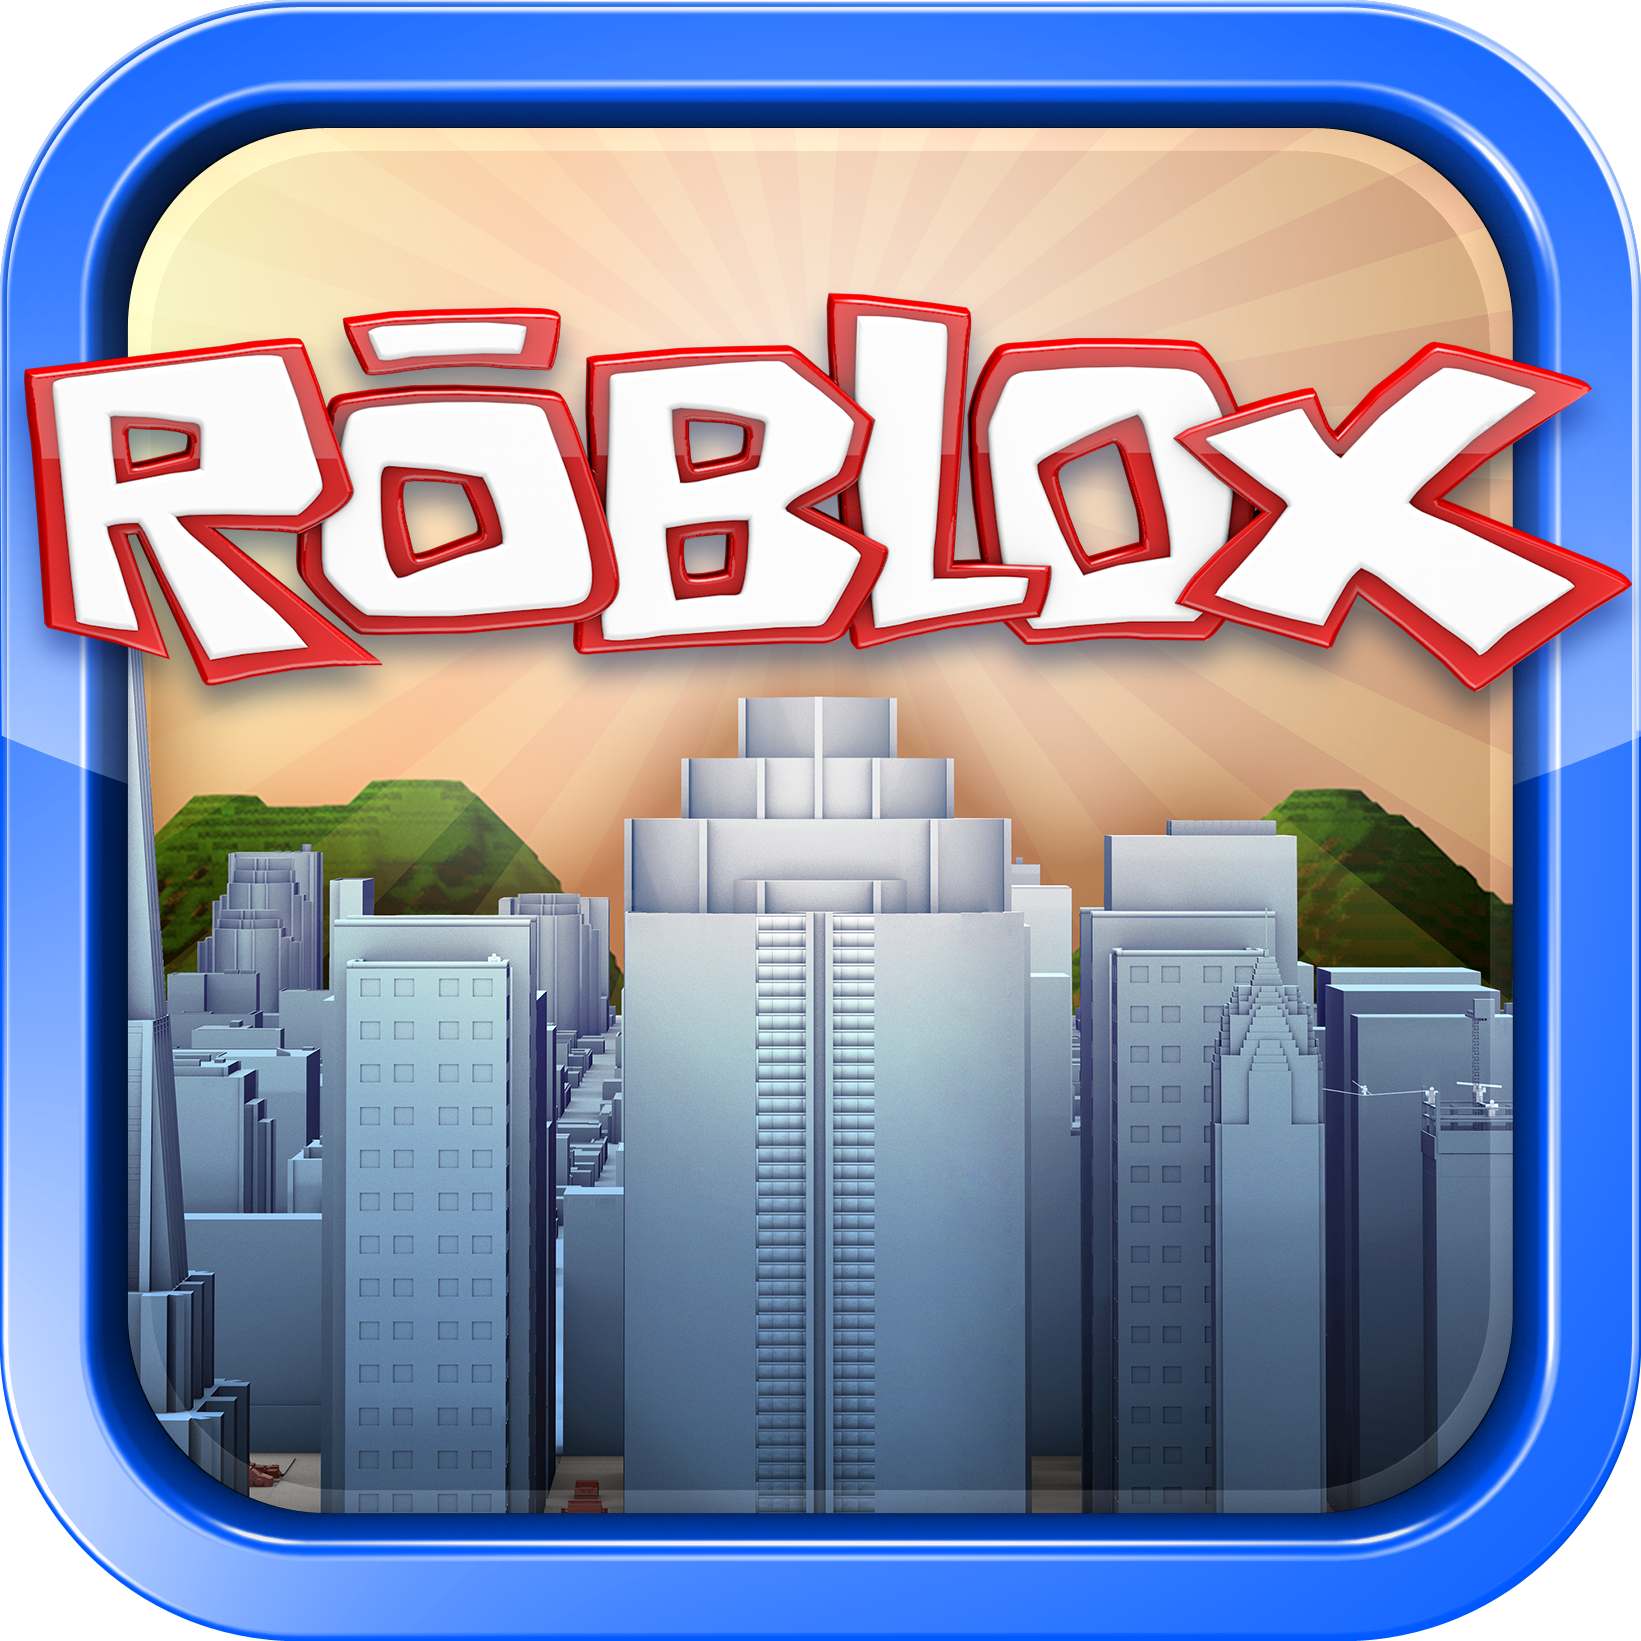 Roblox gear id code list bing images - Http Www Roblox Com Landing Animated